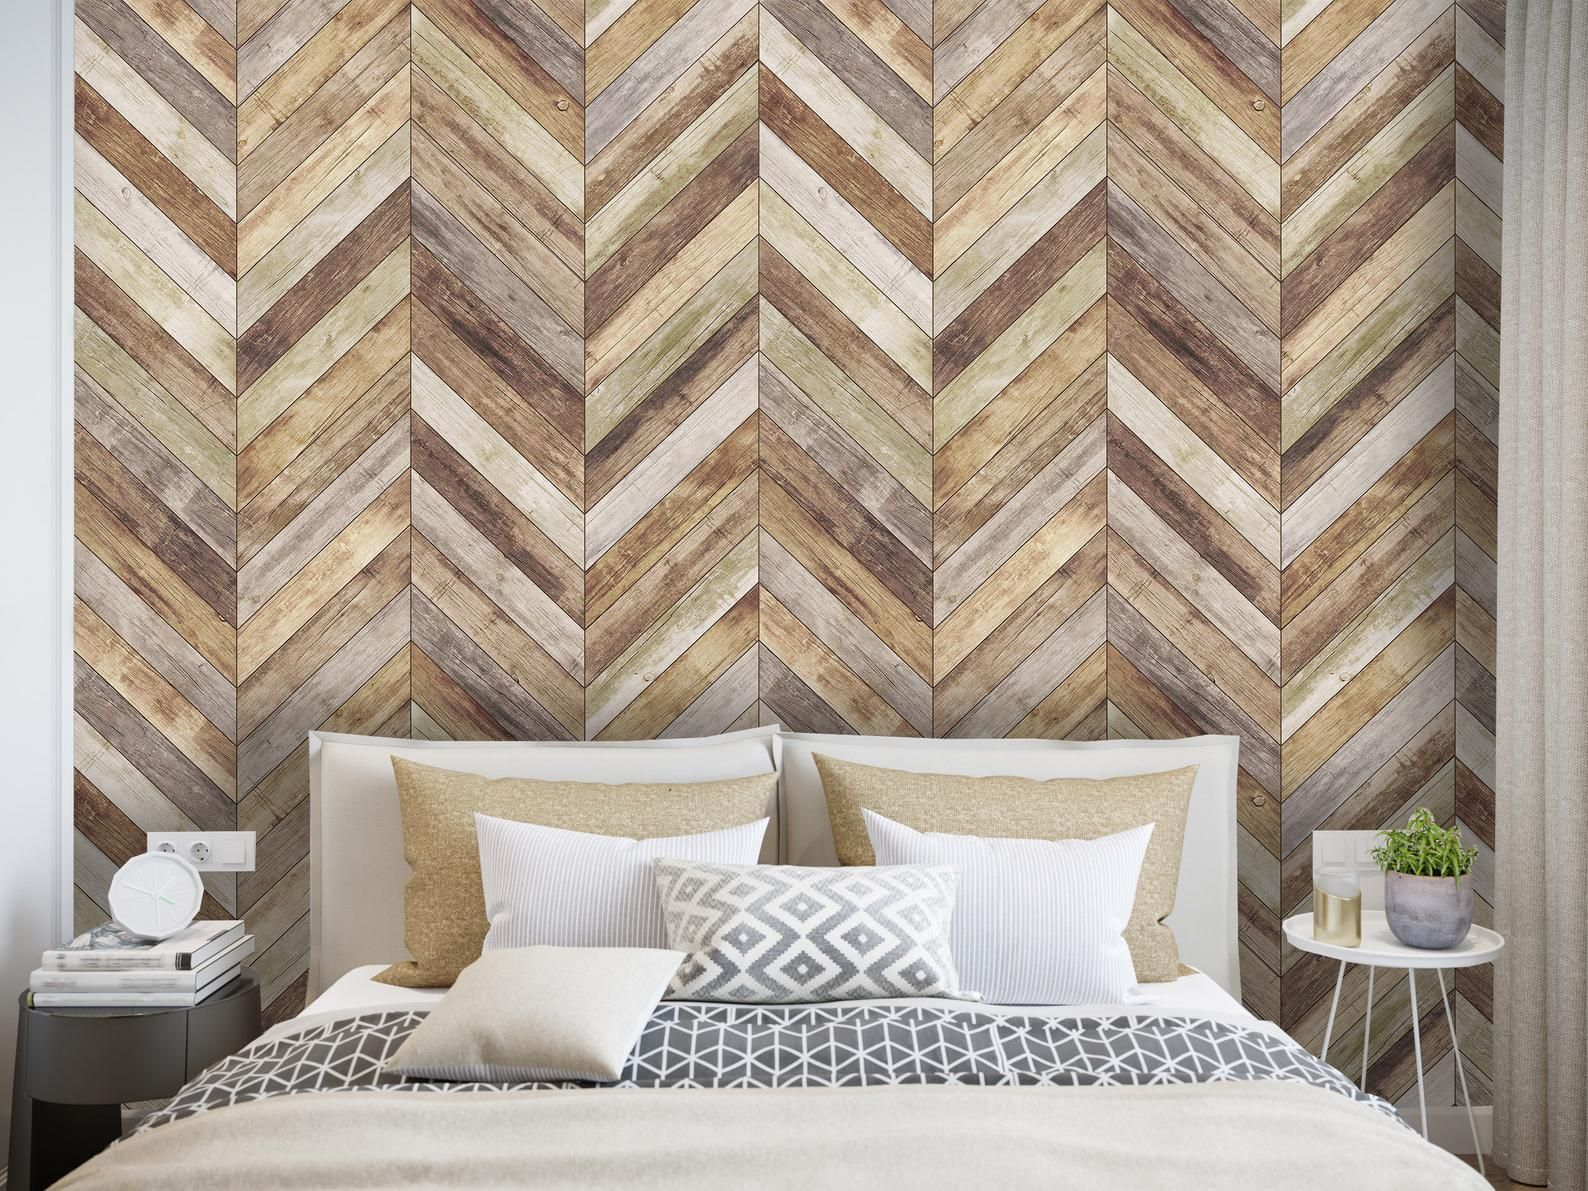 Sanderson Designer Fabric And Wallcoverings Cocos Dvoy223291 Voyage Of Discovery Fabrics Wall Art Decor Living Room Wall Coverings Modern Wallpaper